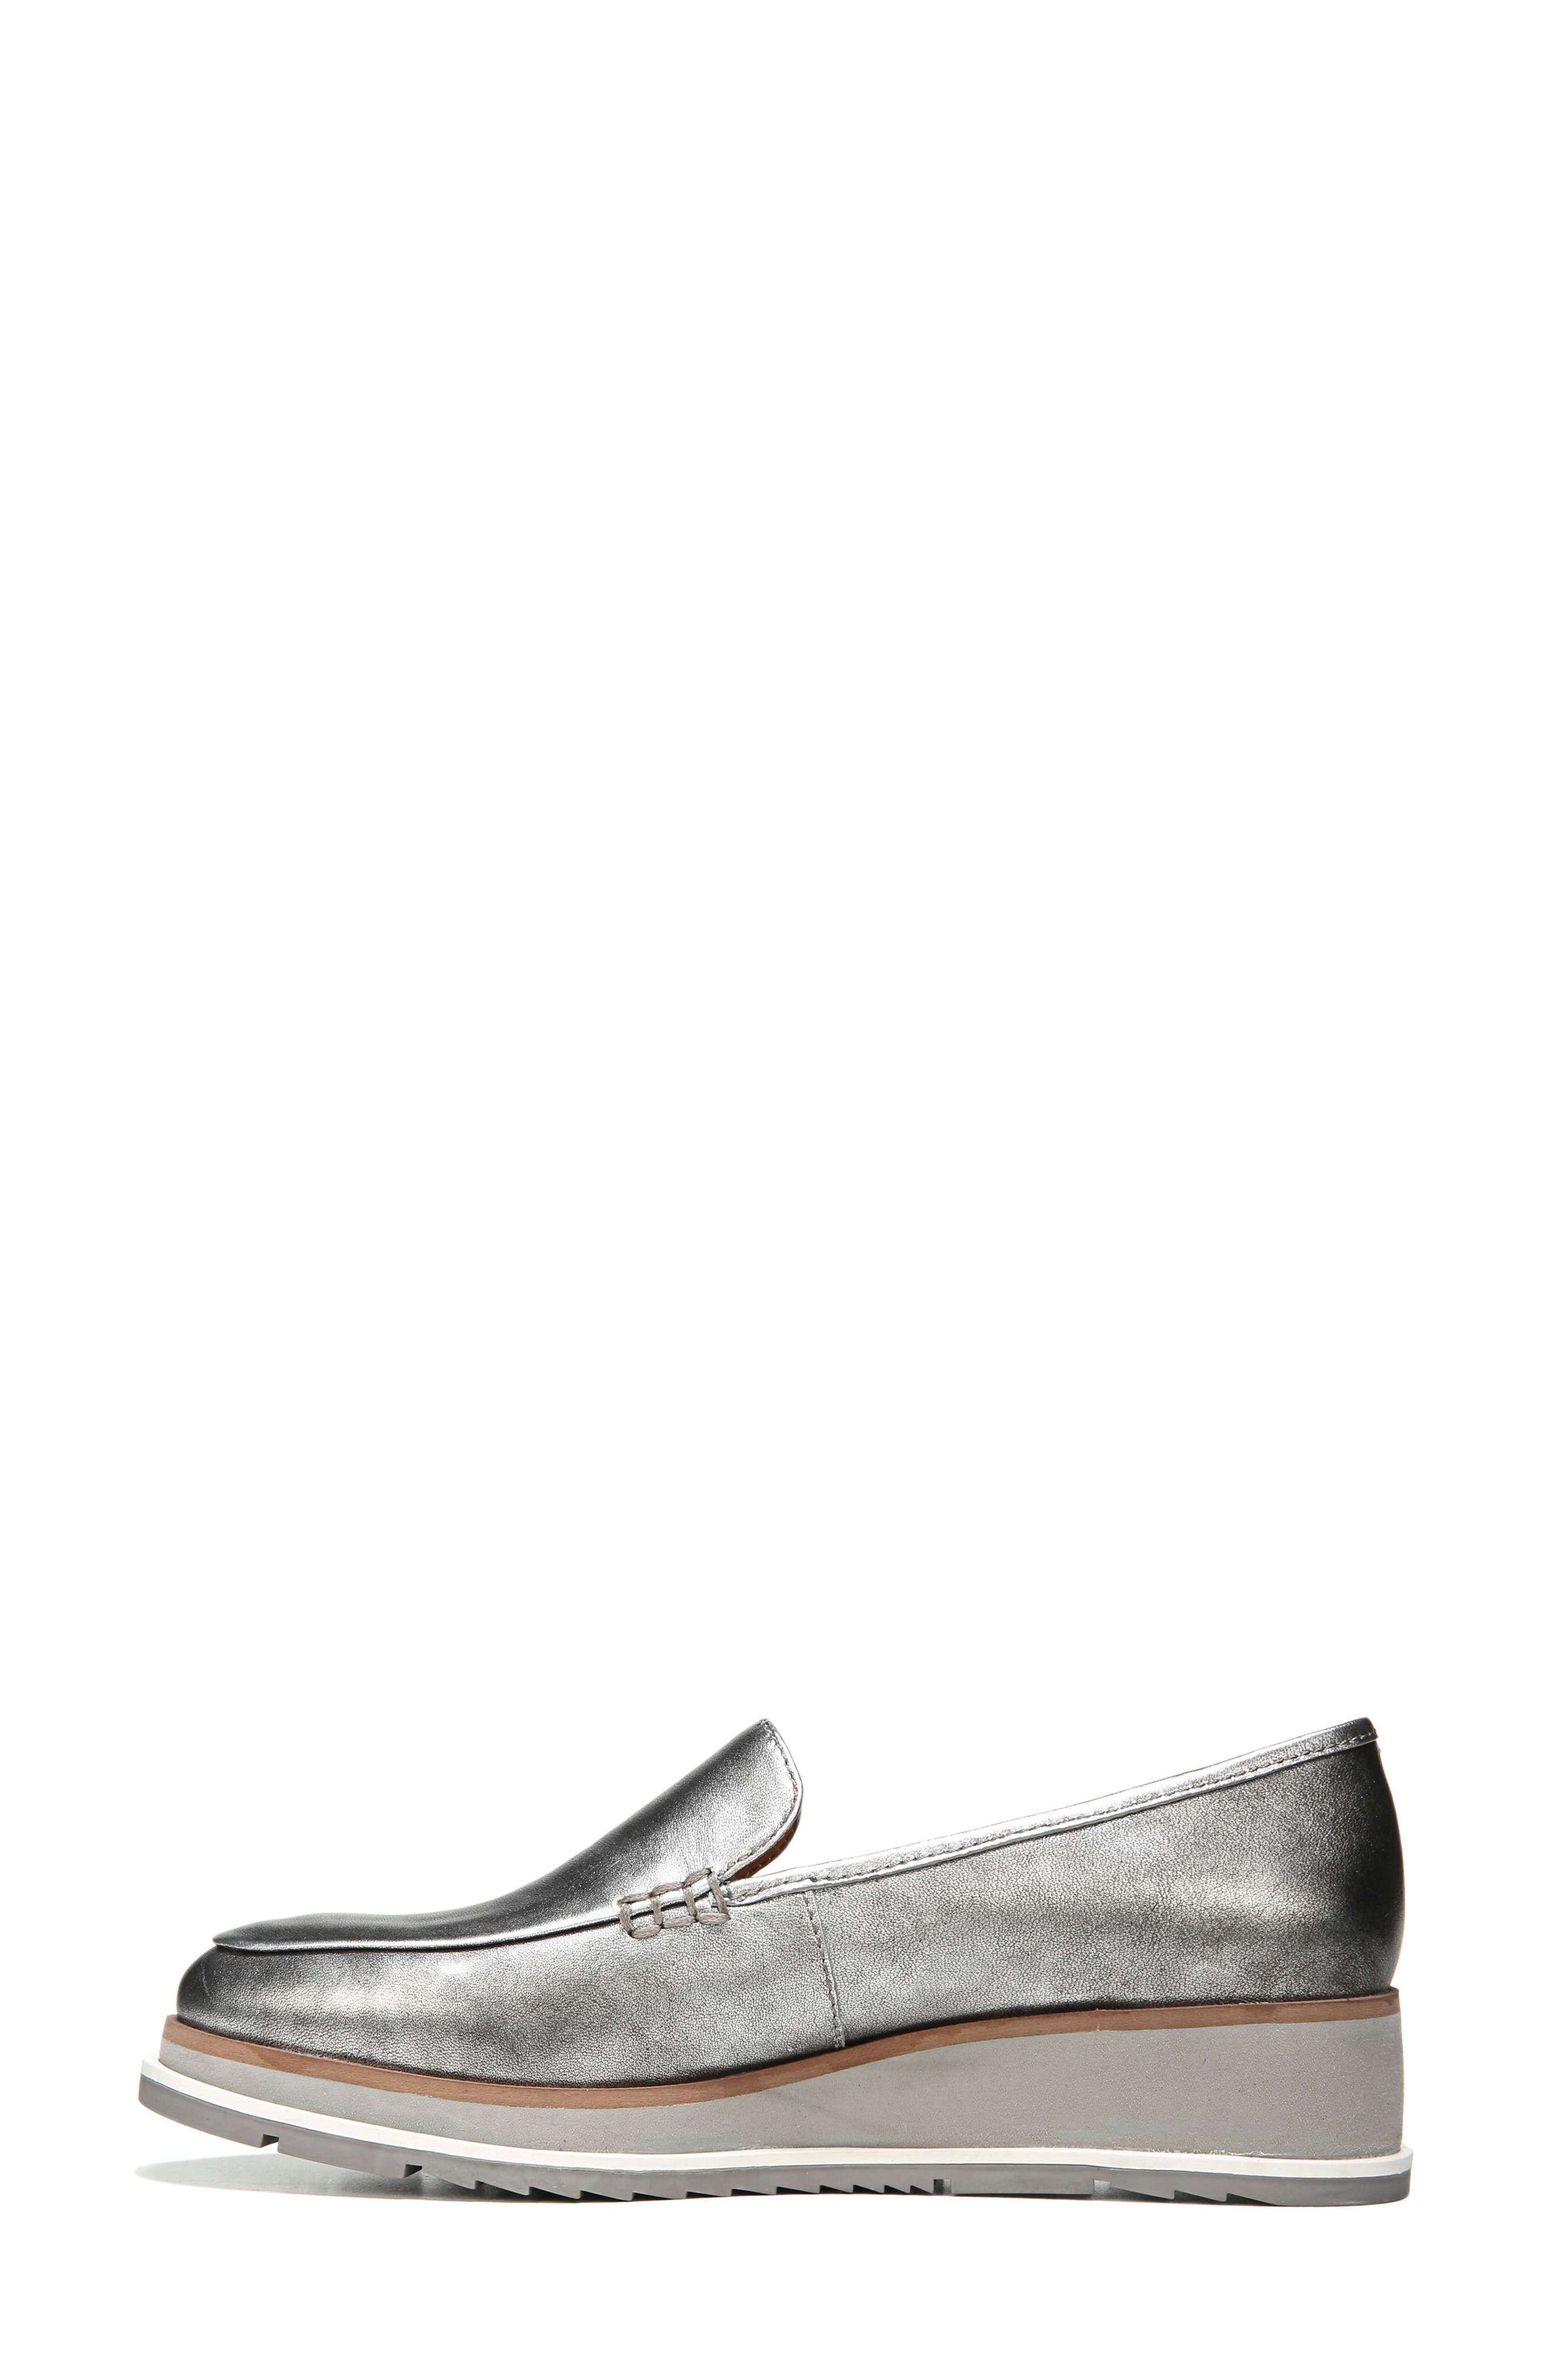 Ayers Loafer Flat,                             Alternate thumbnail 18, color,